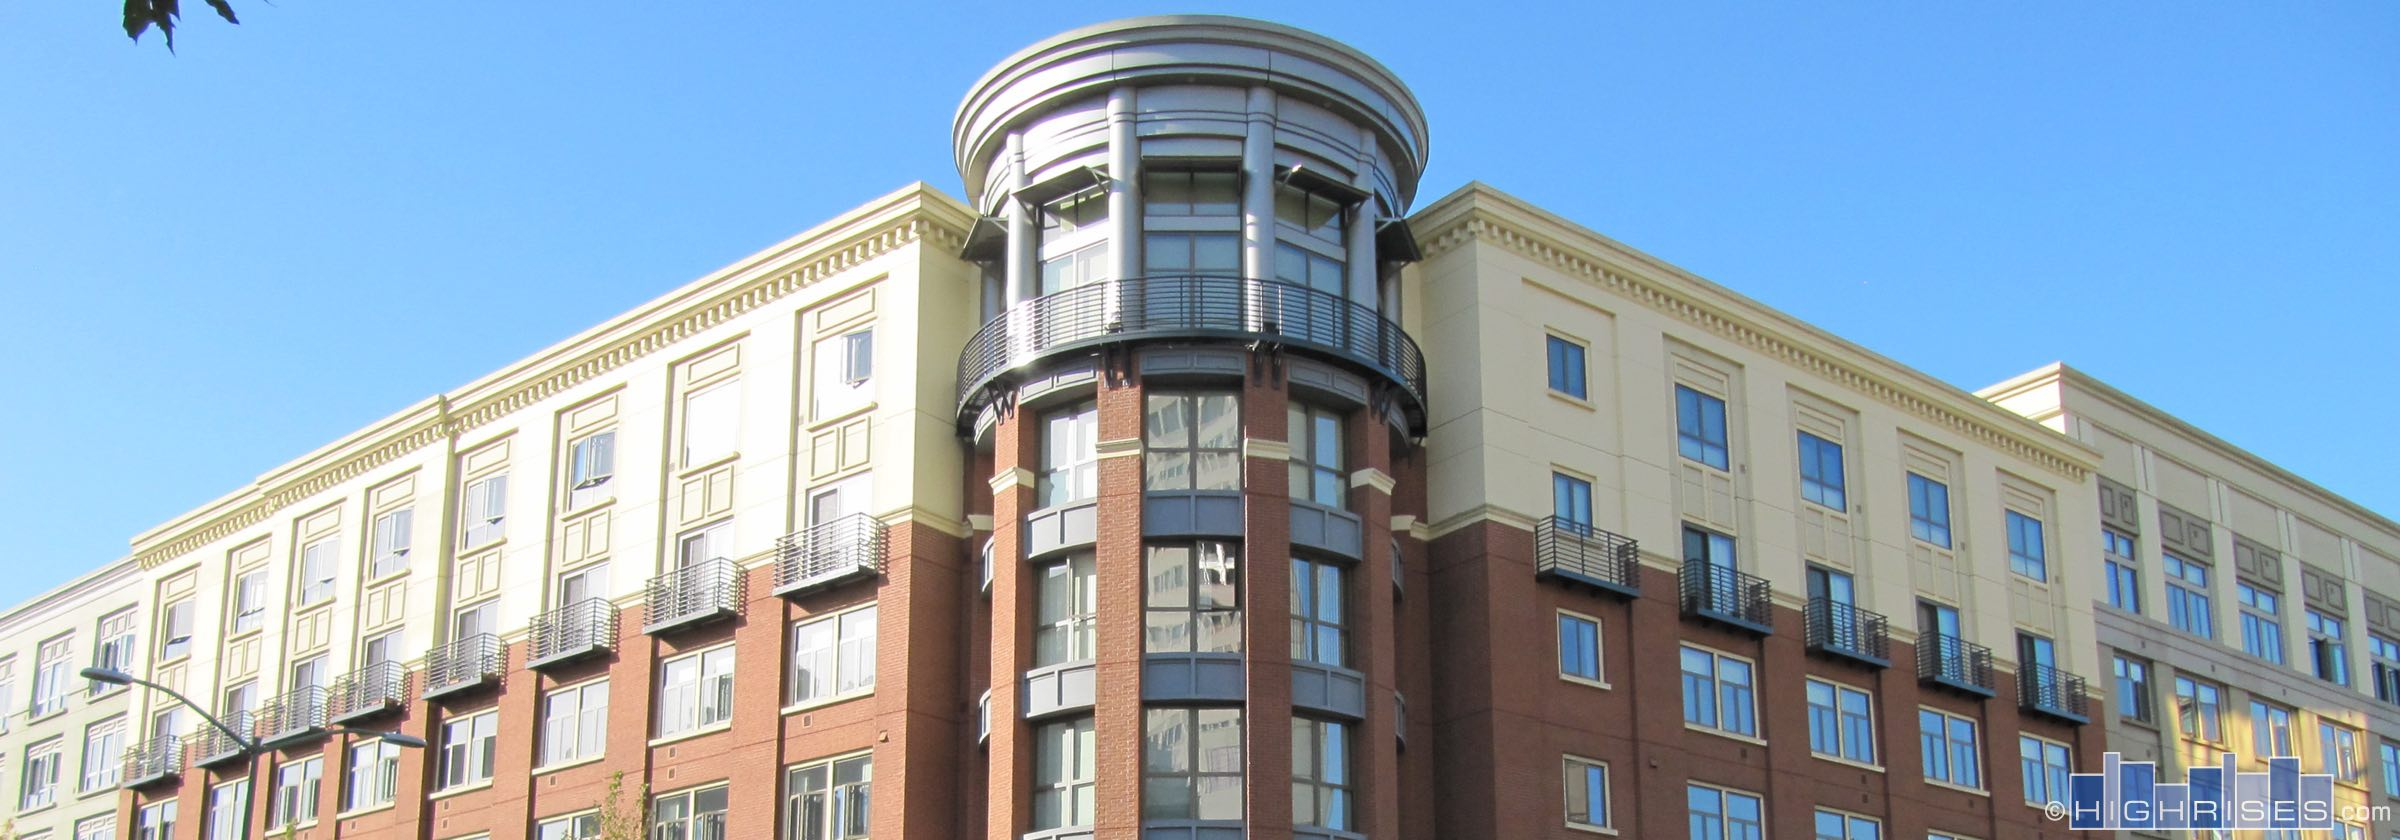 The broadway grand condos of oakland 438 grand ave for 11031 broadway terrace oakland ca